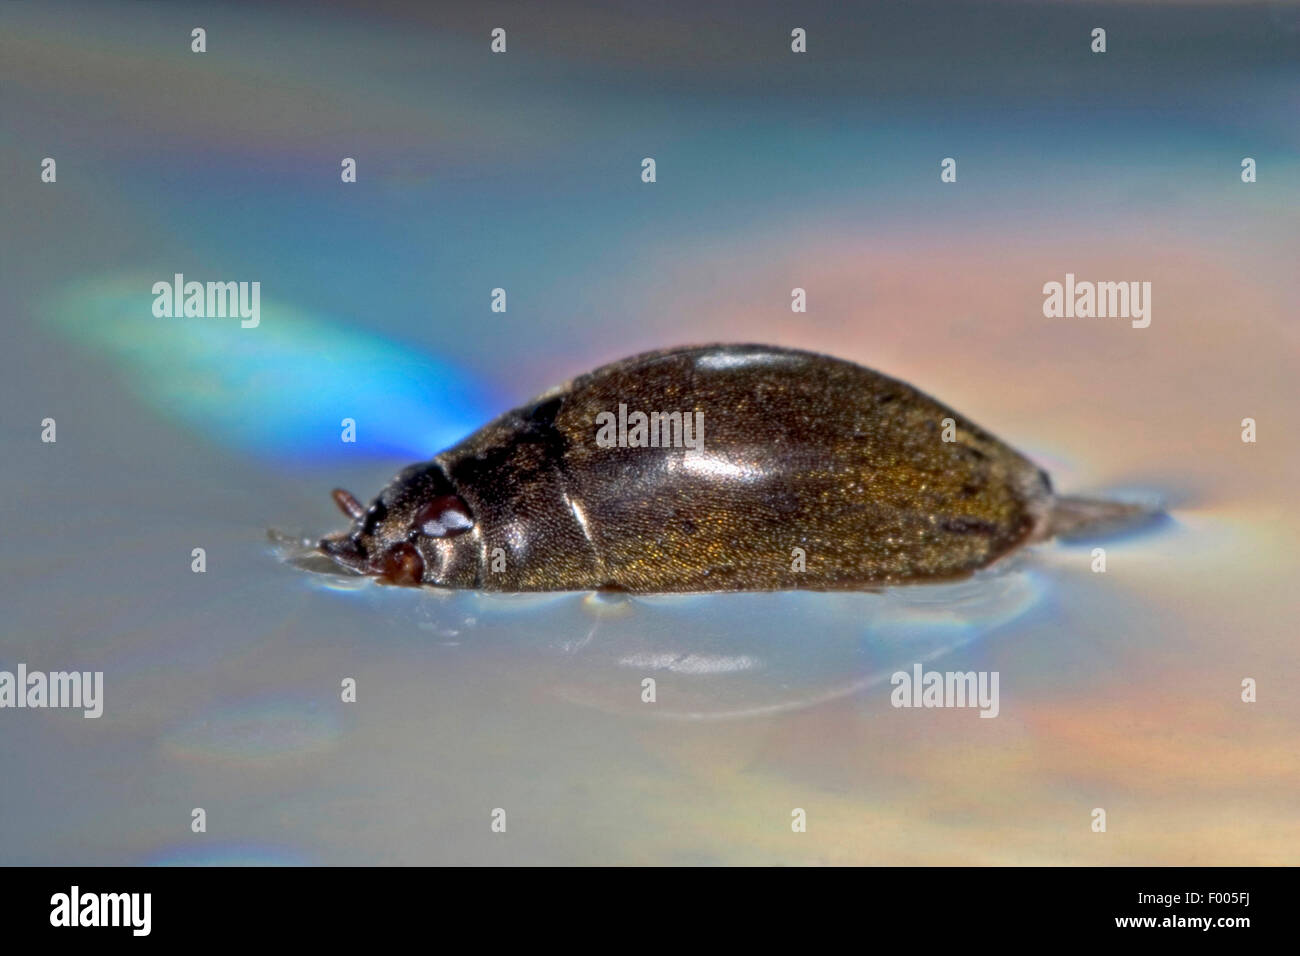 Hairy whirligig, Hairy whirligig beetle (Orectochilus villosus), swims at water surface, Germany Stock Photo